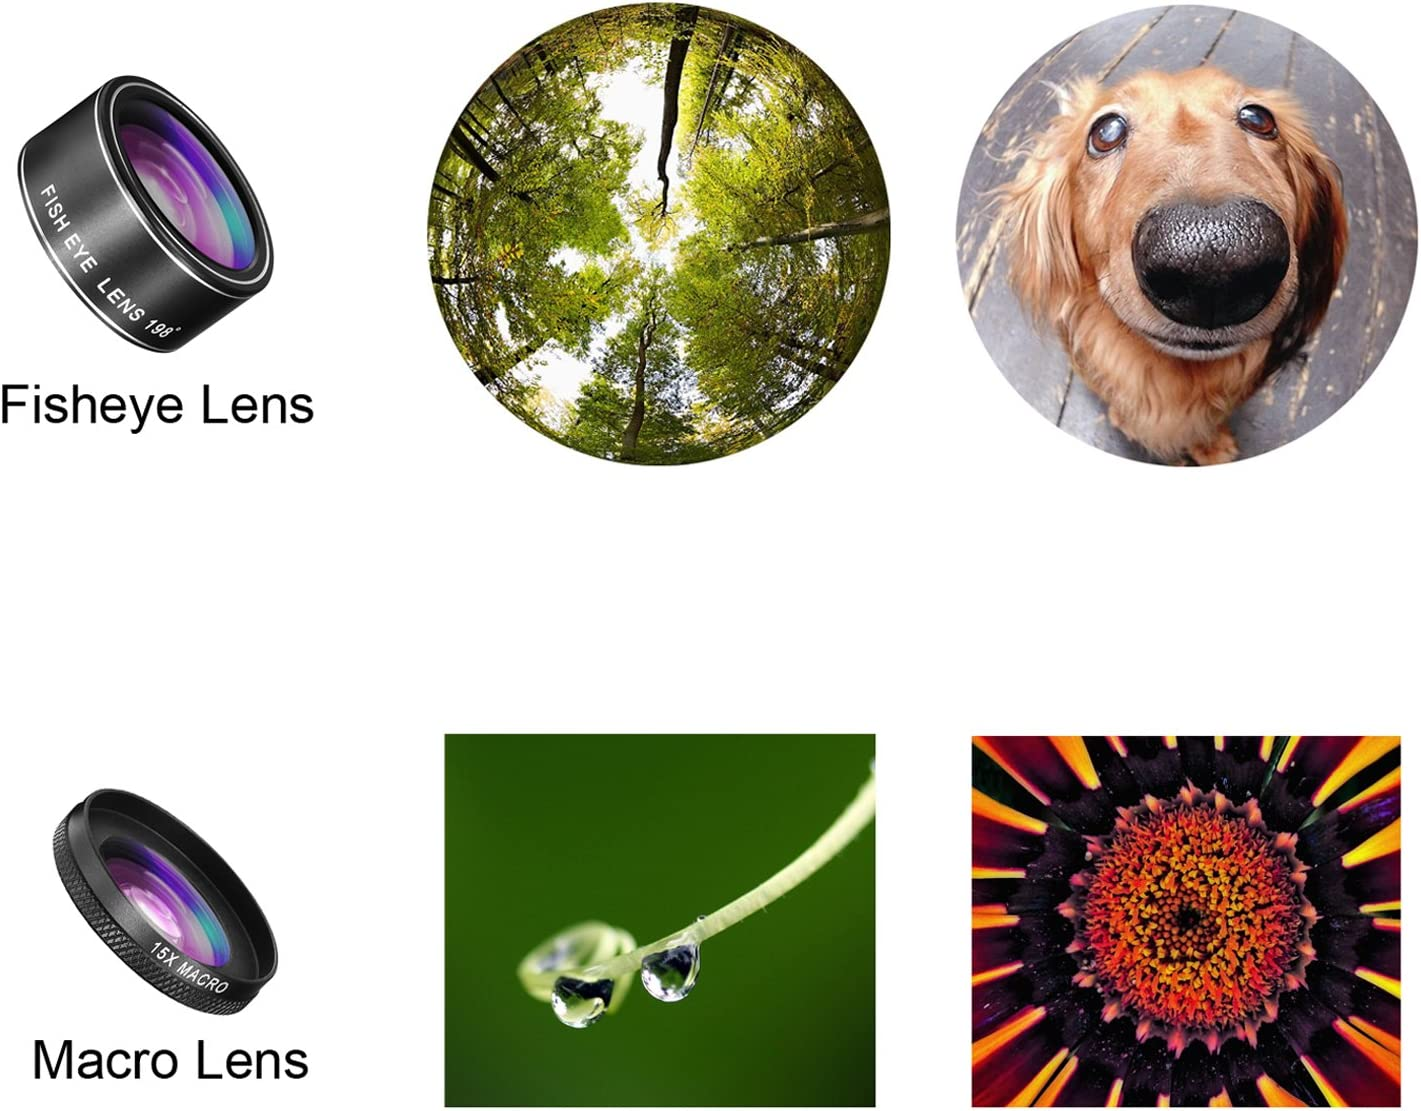 7,6 Cell Phone Lens for iPhone X SE /& Most Smartphones 8 Fisheye Lens, Macro Lens, 0.35X Wide Angle Lens, 2X Zoom Telephoto Lens, CPL 8 Plus TECHO 5 in 1 HD Camera Lens Kit